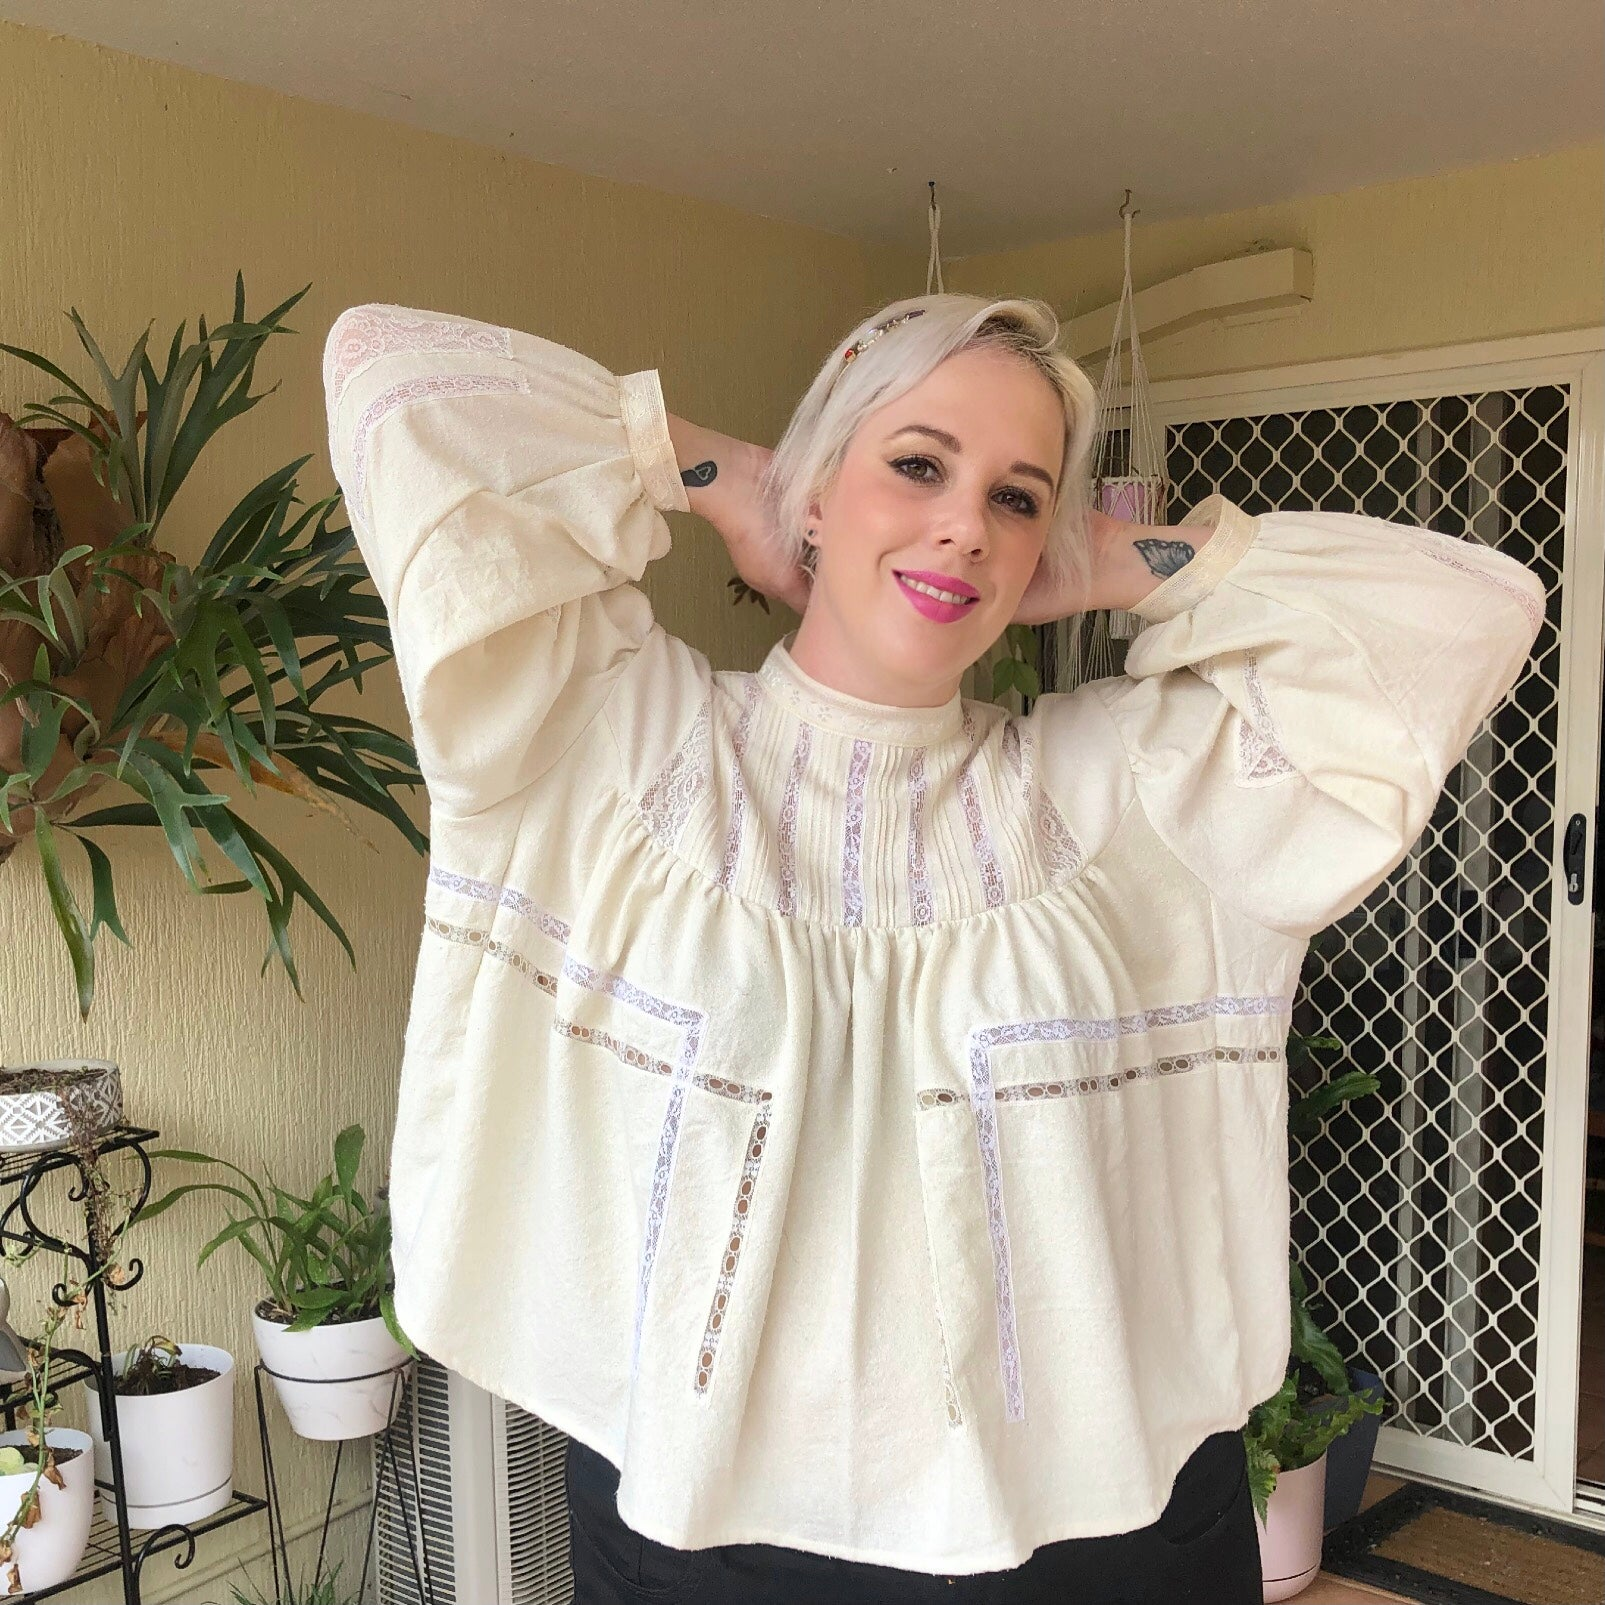 Shannon poses with her hands behind her head whilst smiling at the camera, showing the lace panel details across the front of her Gibson Girl Blouse